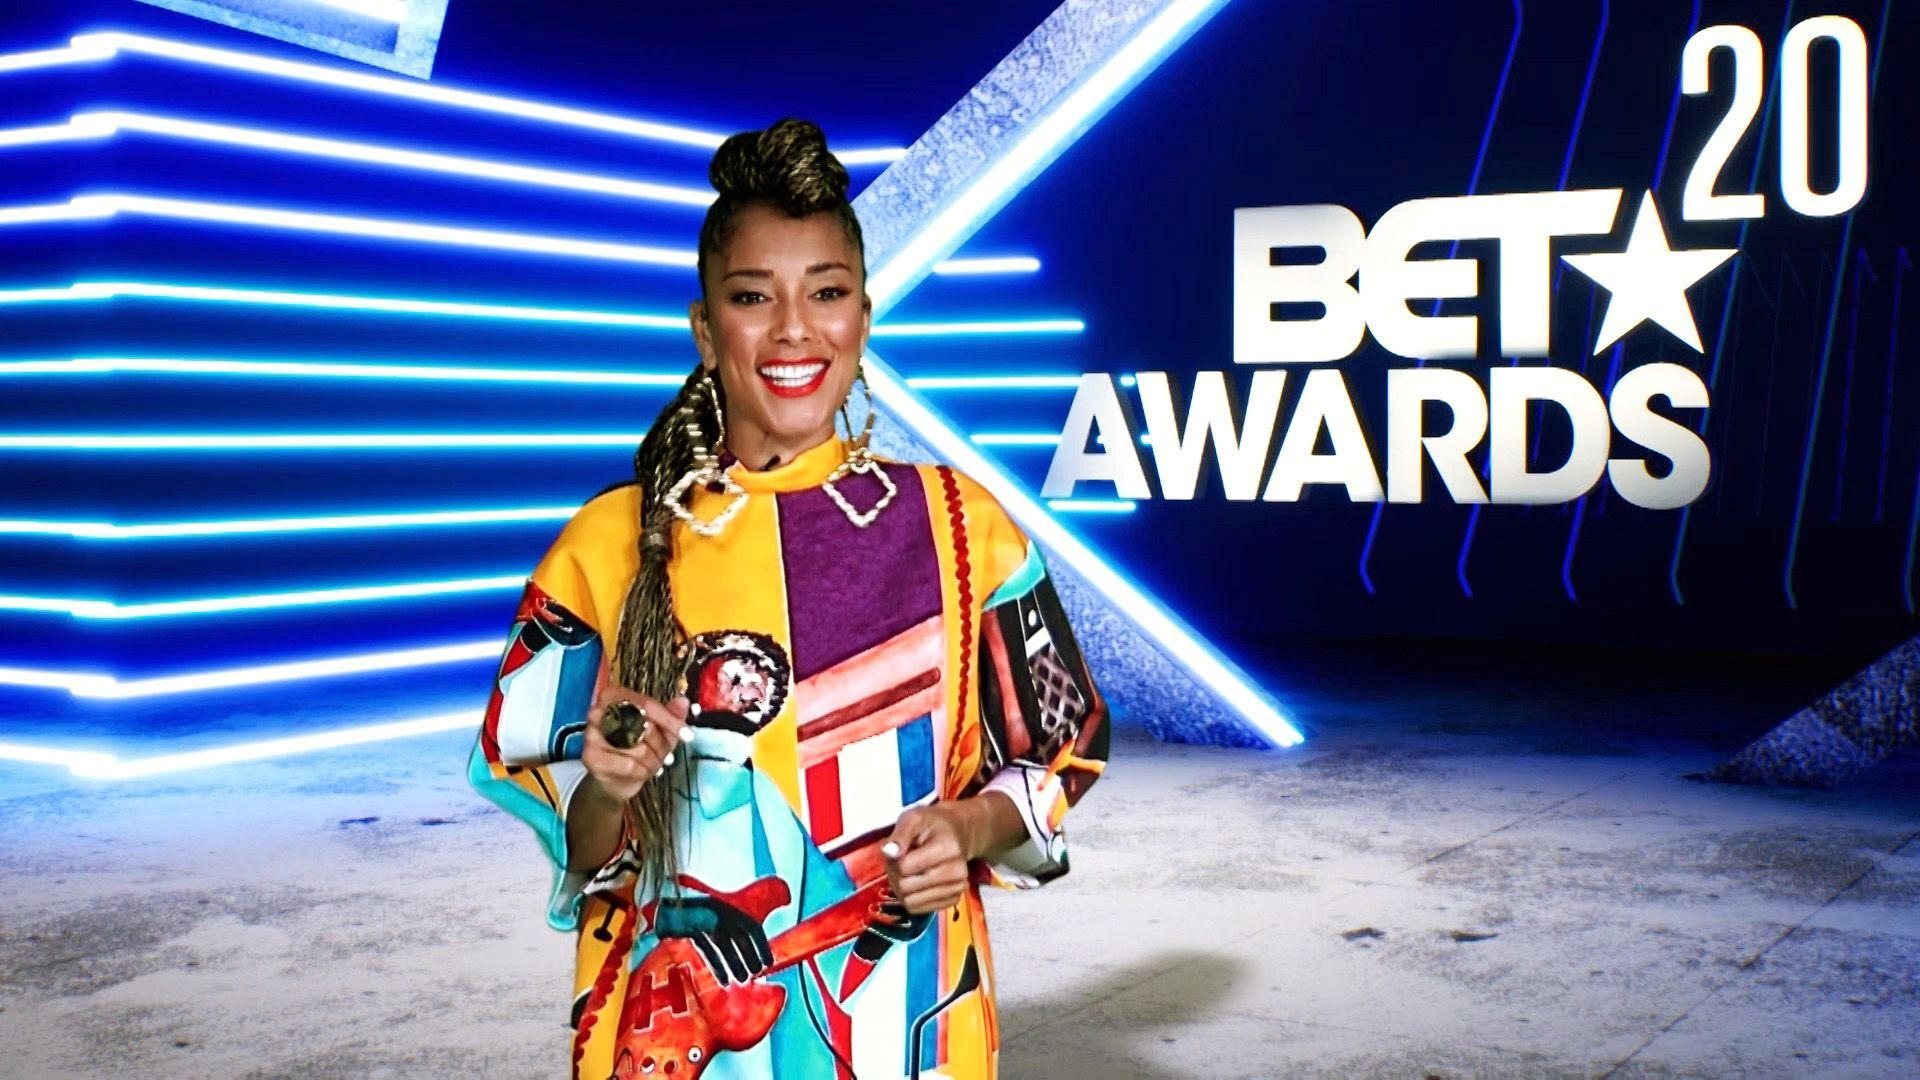 BET Awards Will Host Vaccinated-Only Live Audience This June